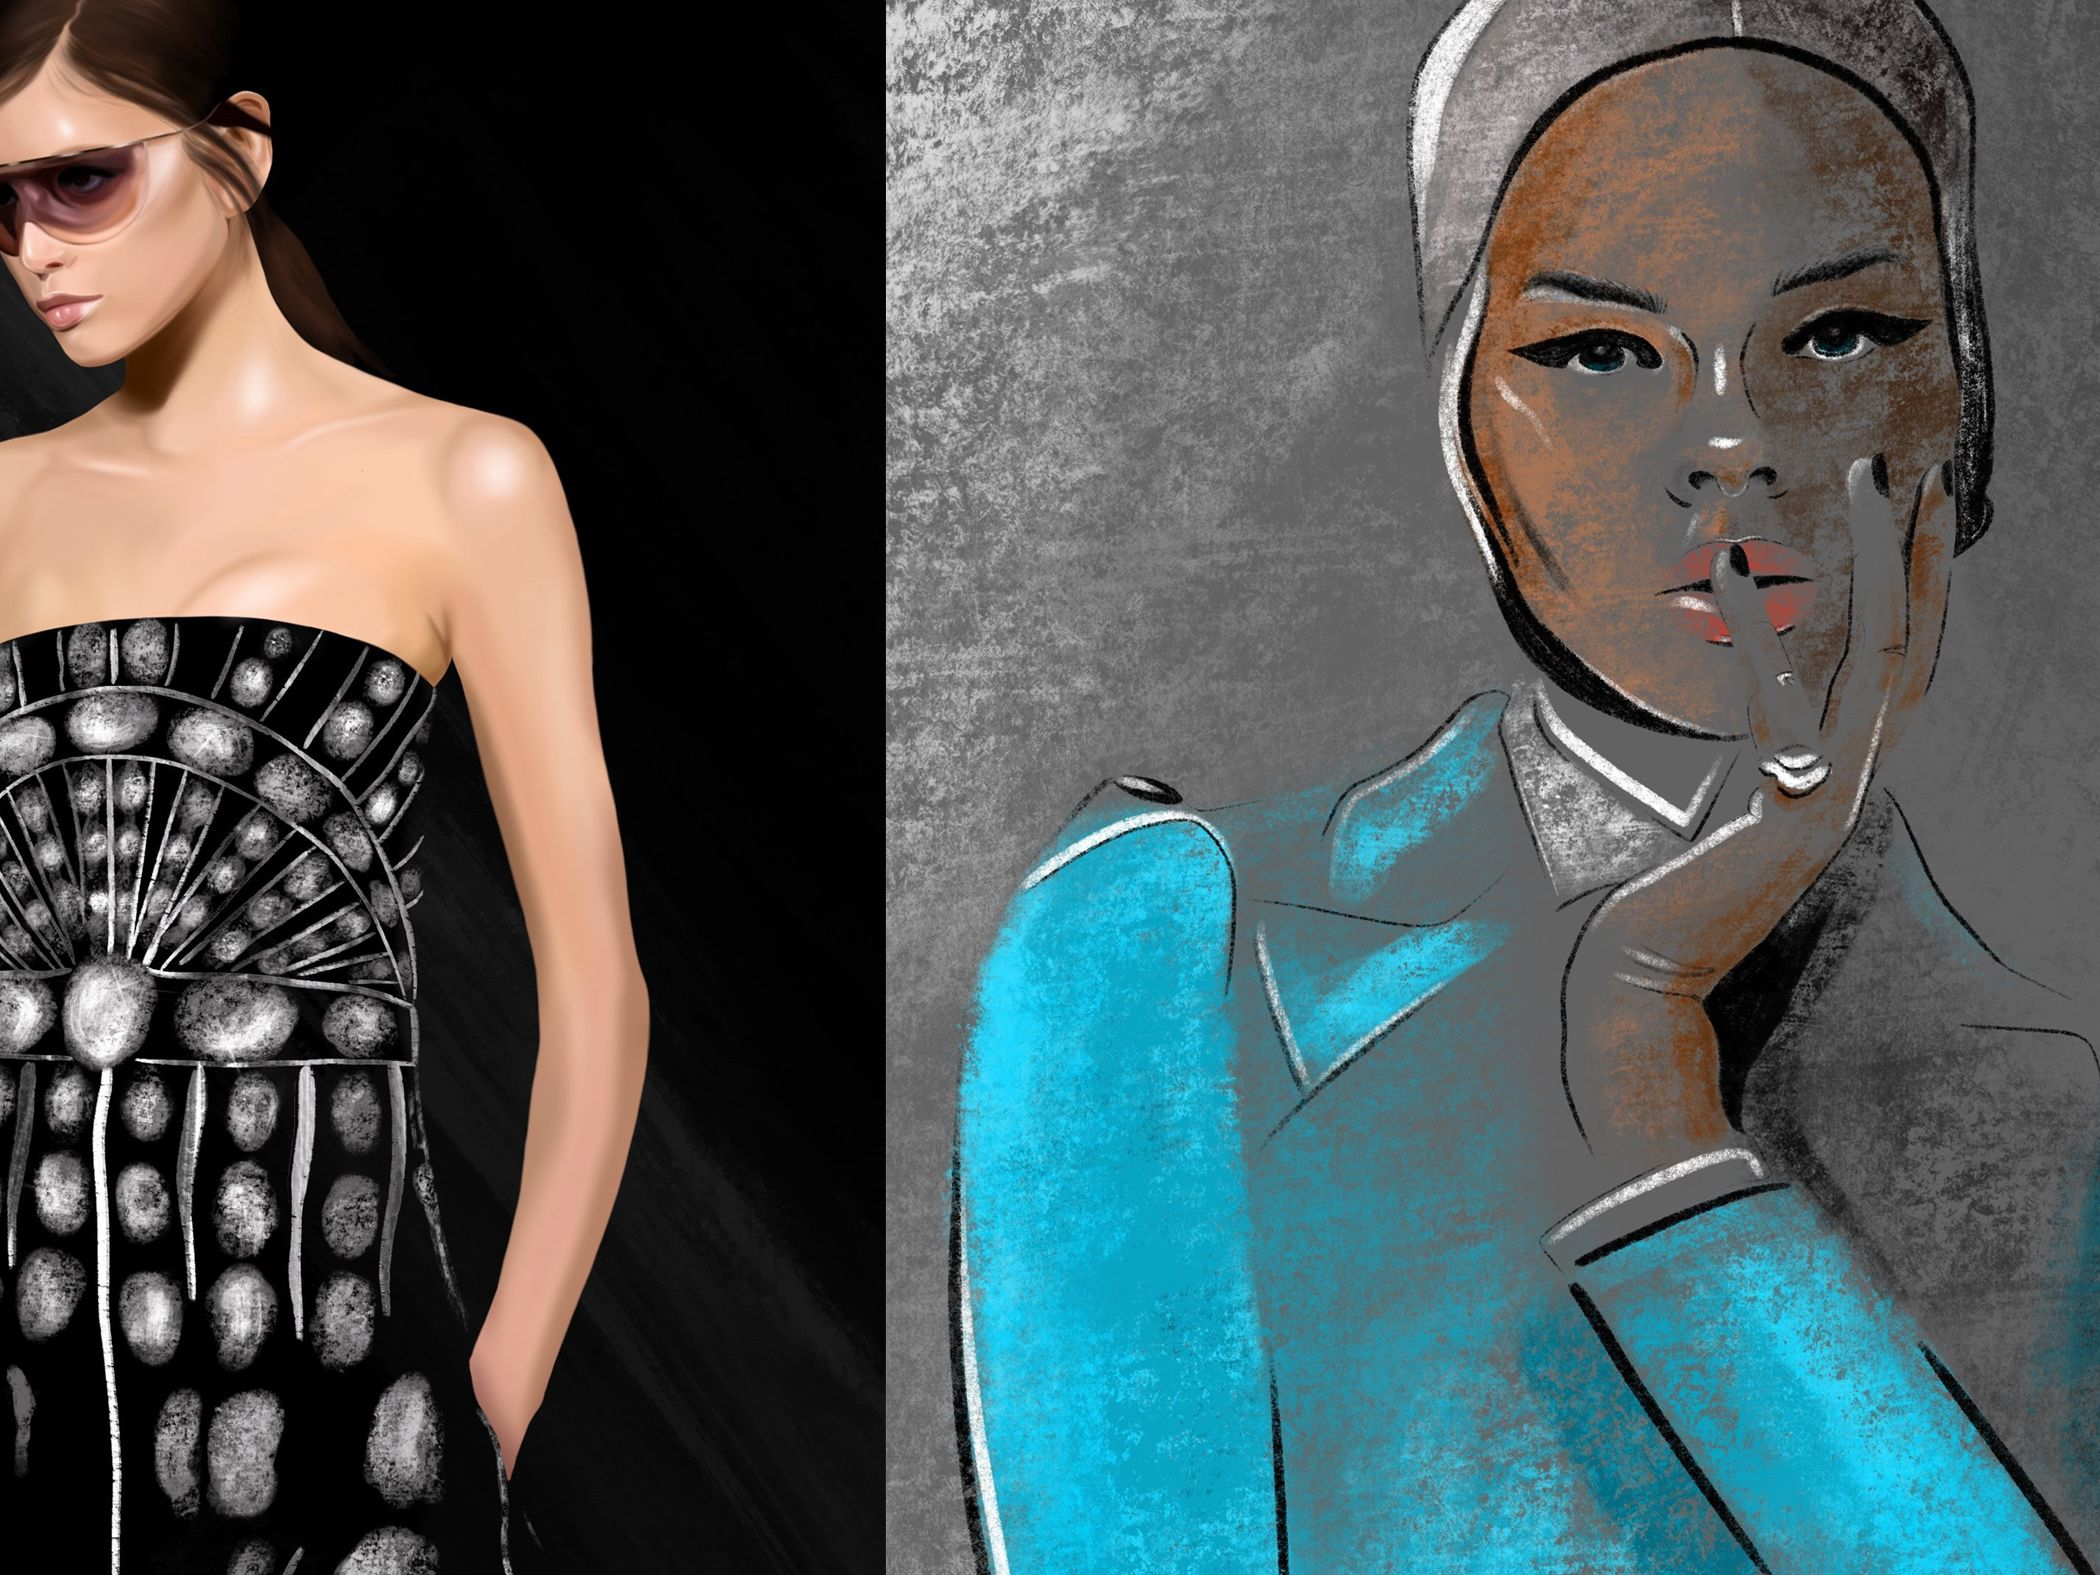 Compilation of three female fashion illustrations